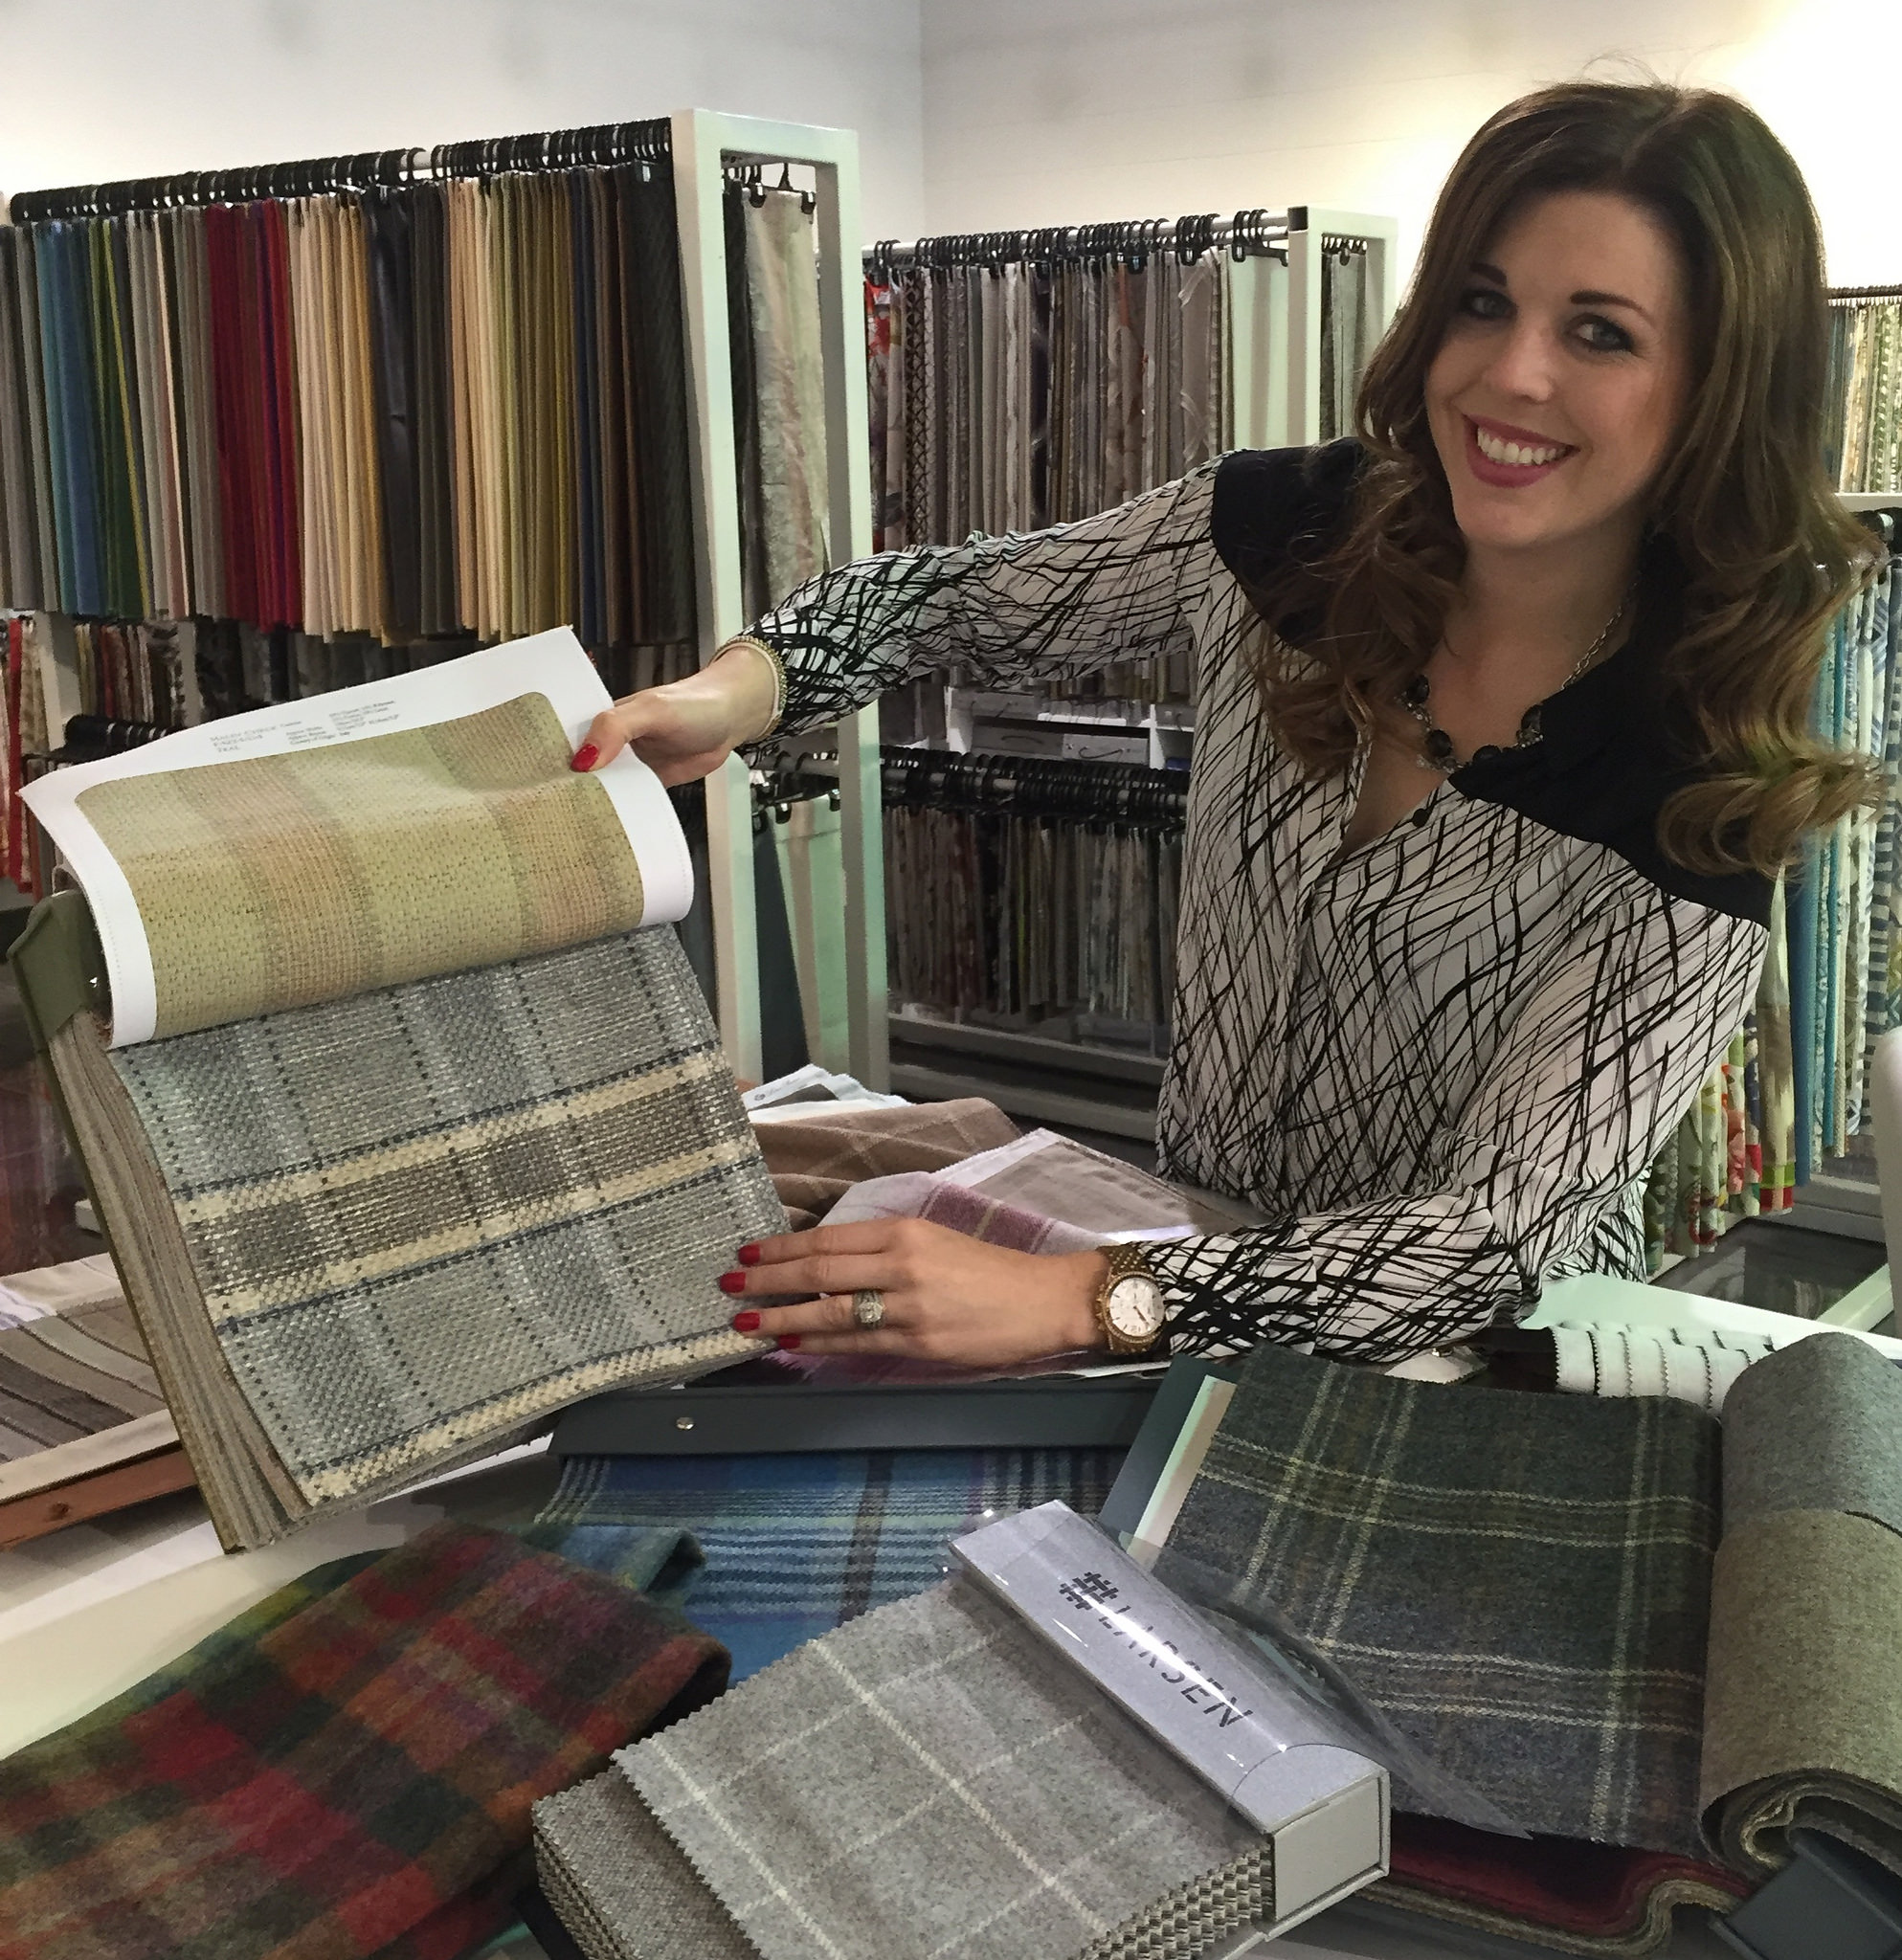 Colefax and Fowler, Larson, Kirkby and Fabricut are some of the plaids represented